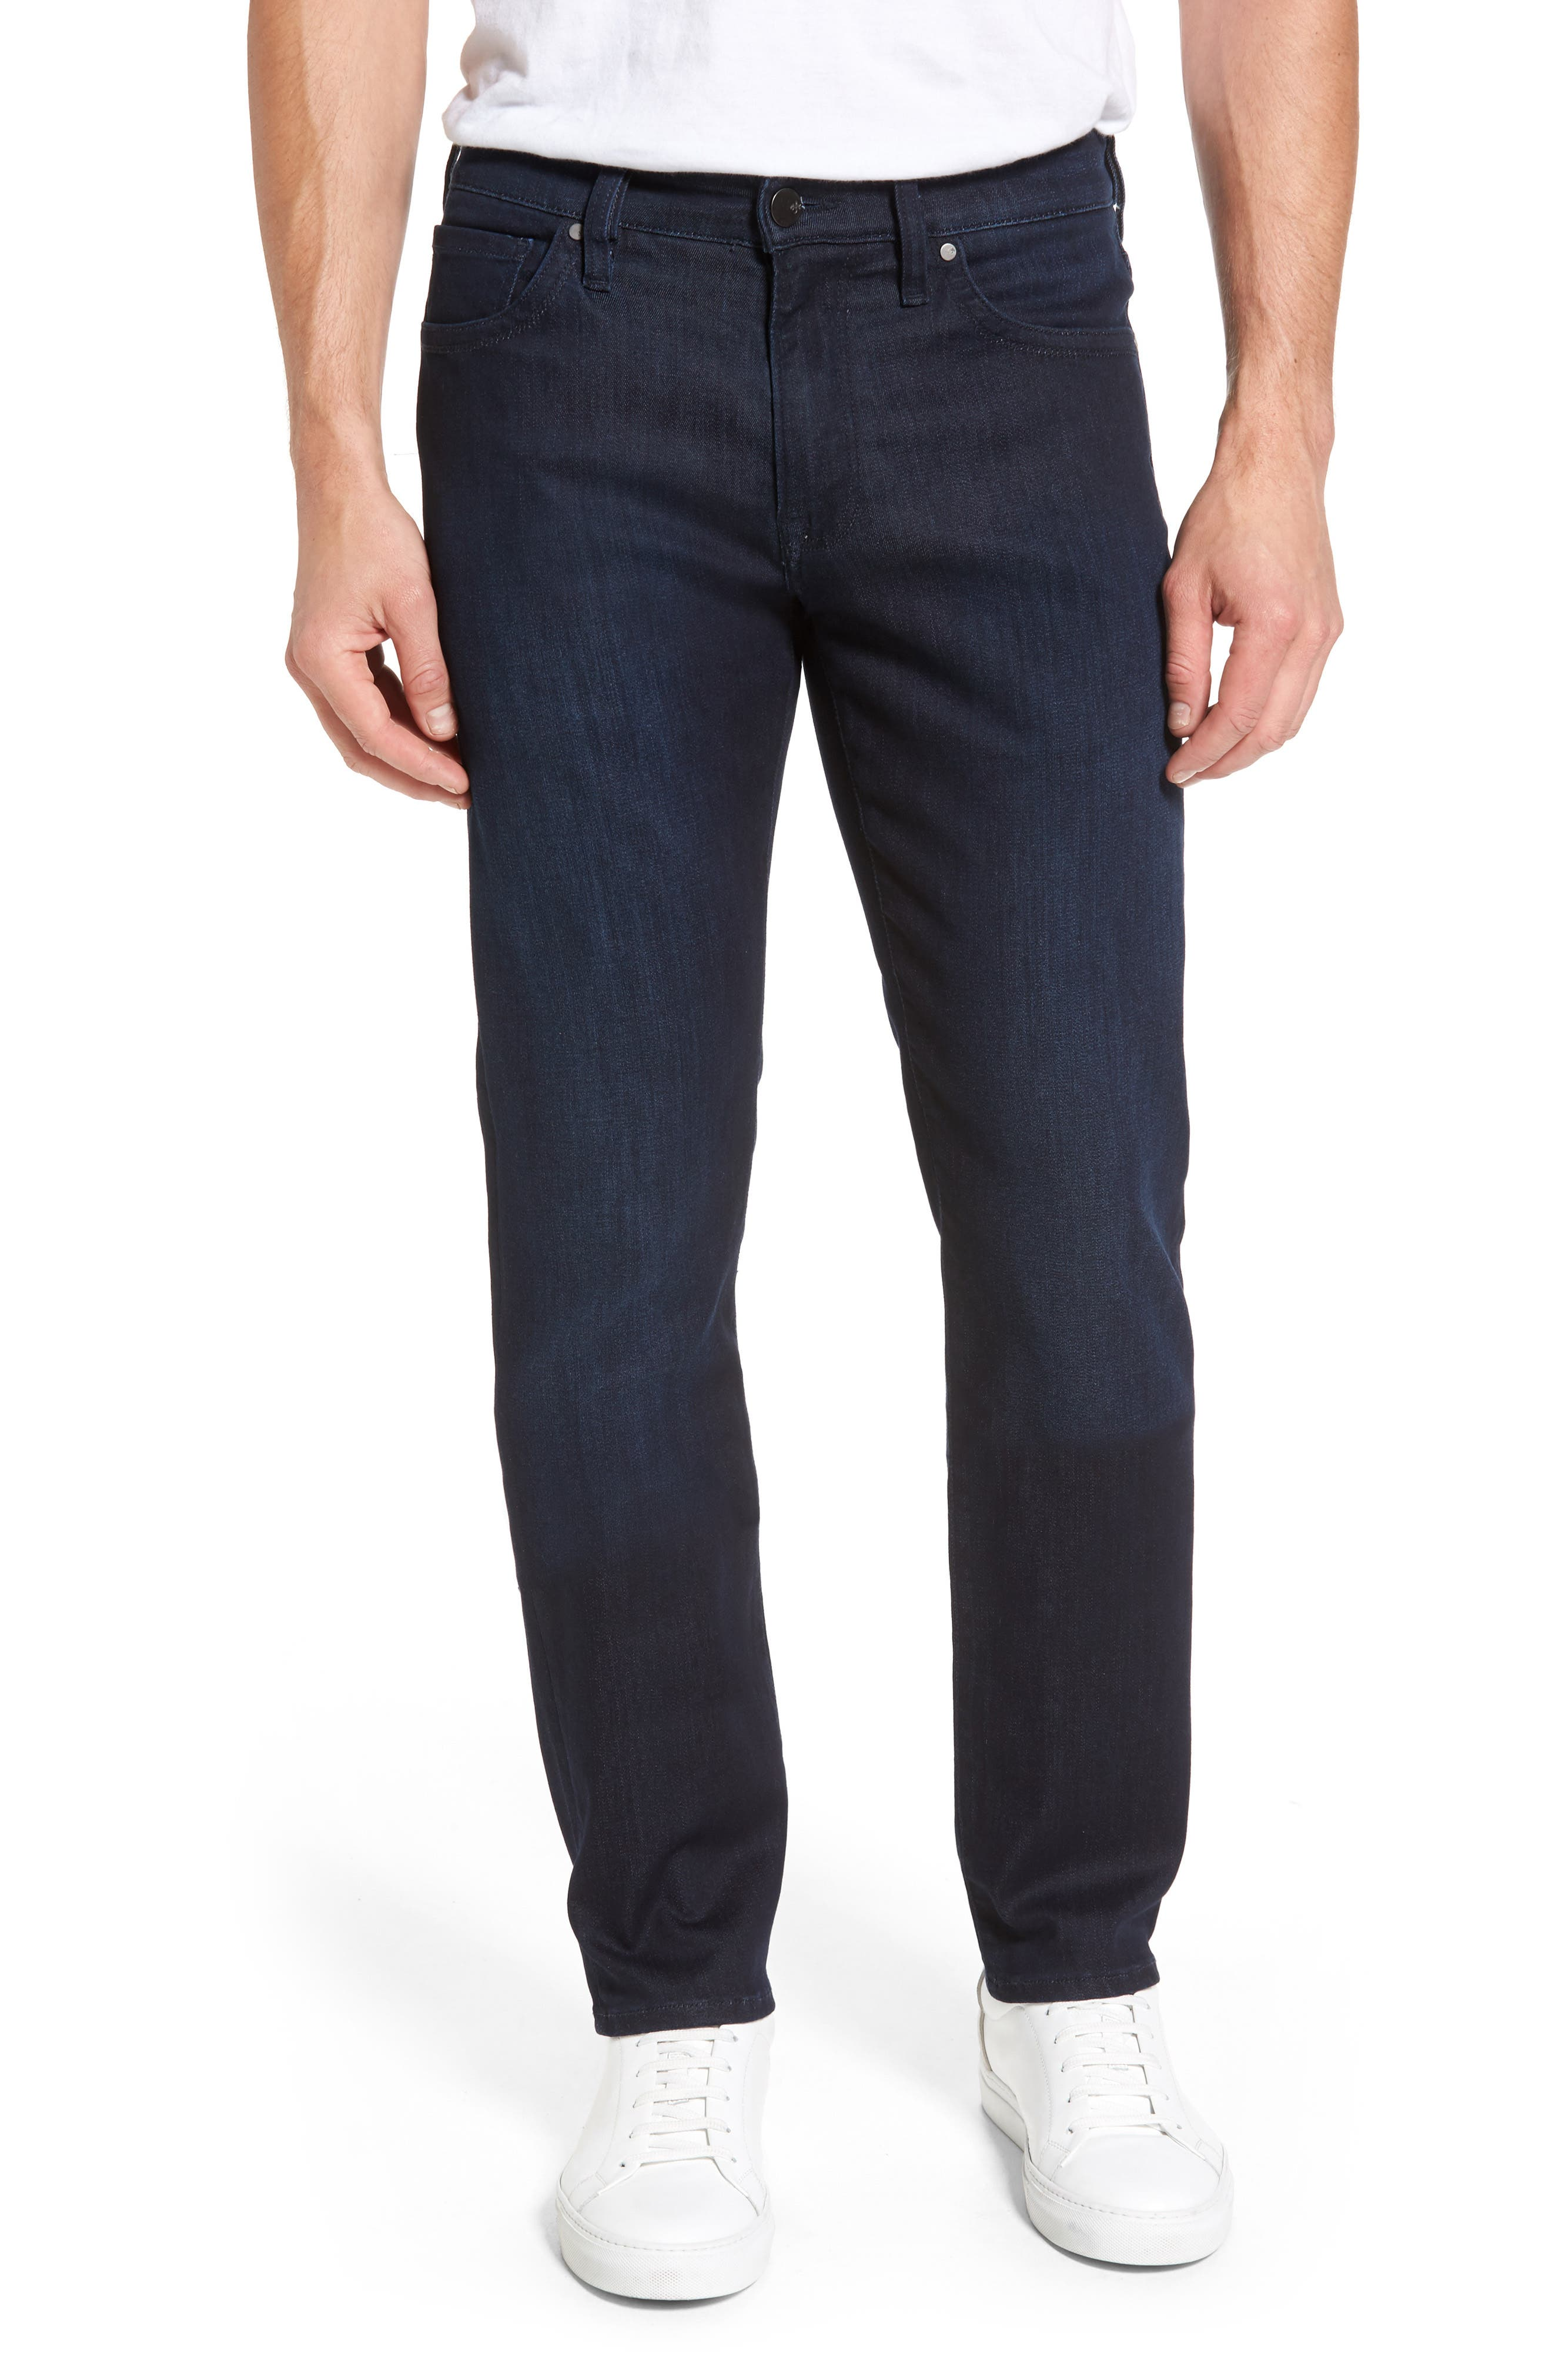 Courage Straight Leg Jeans,                             Main thumbnail 1, color,